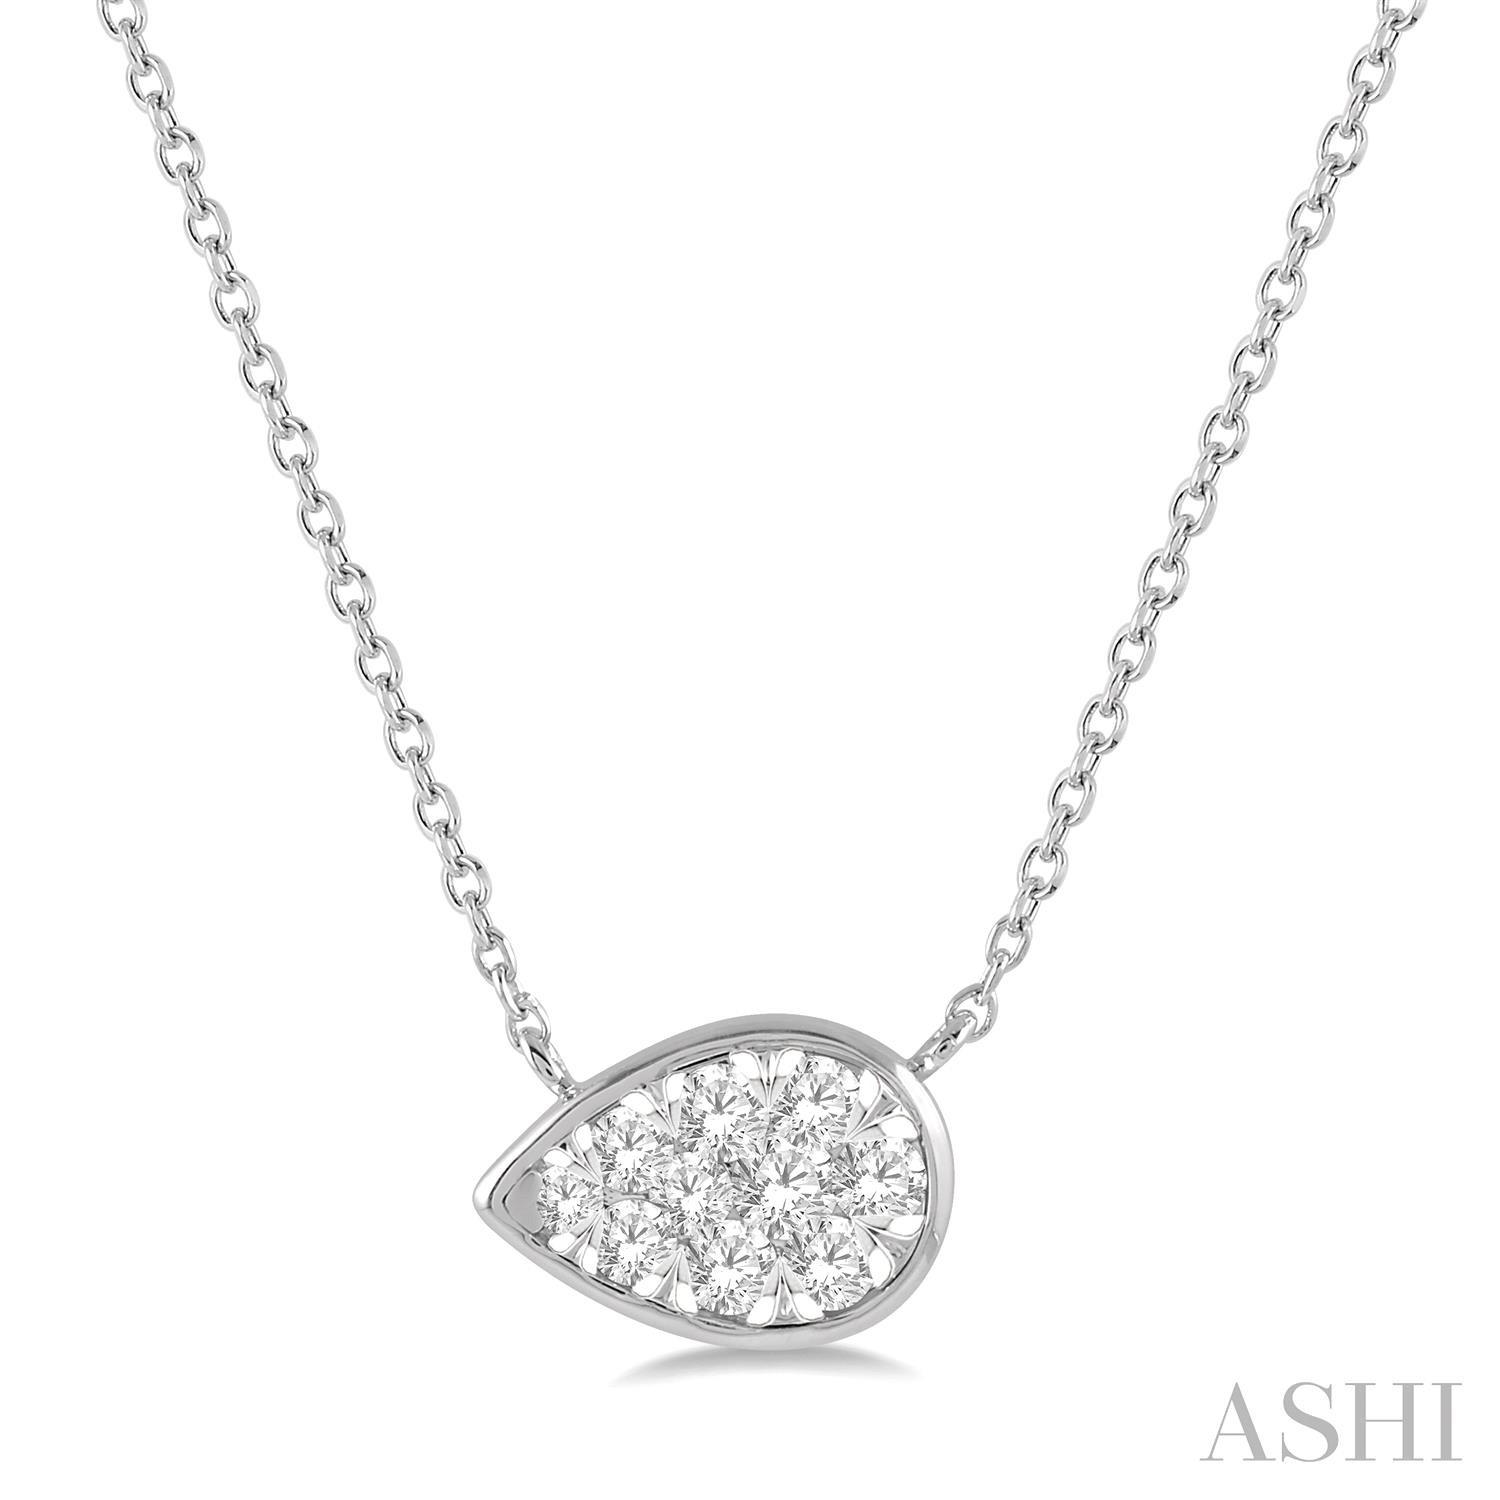 PEAR SHAPE LOVEBRIGHT ESSENTIAL DIAMOND NECKLACE